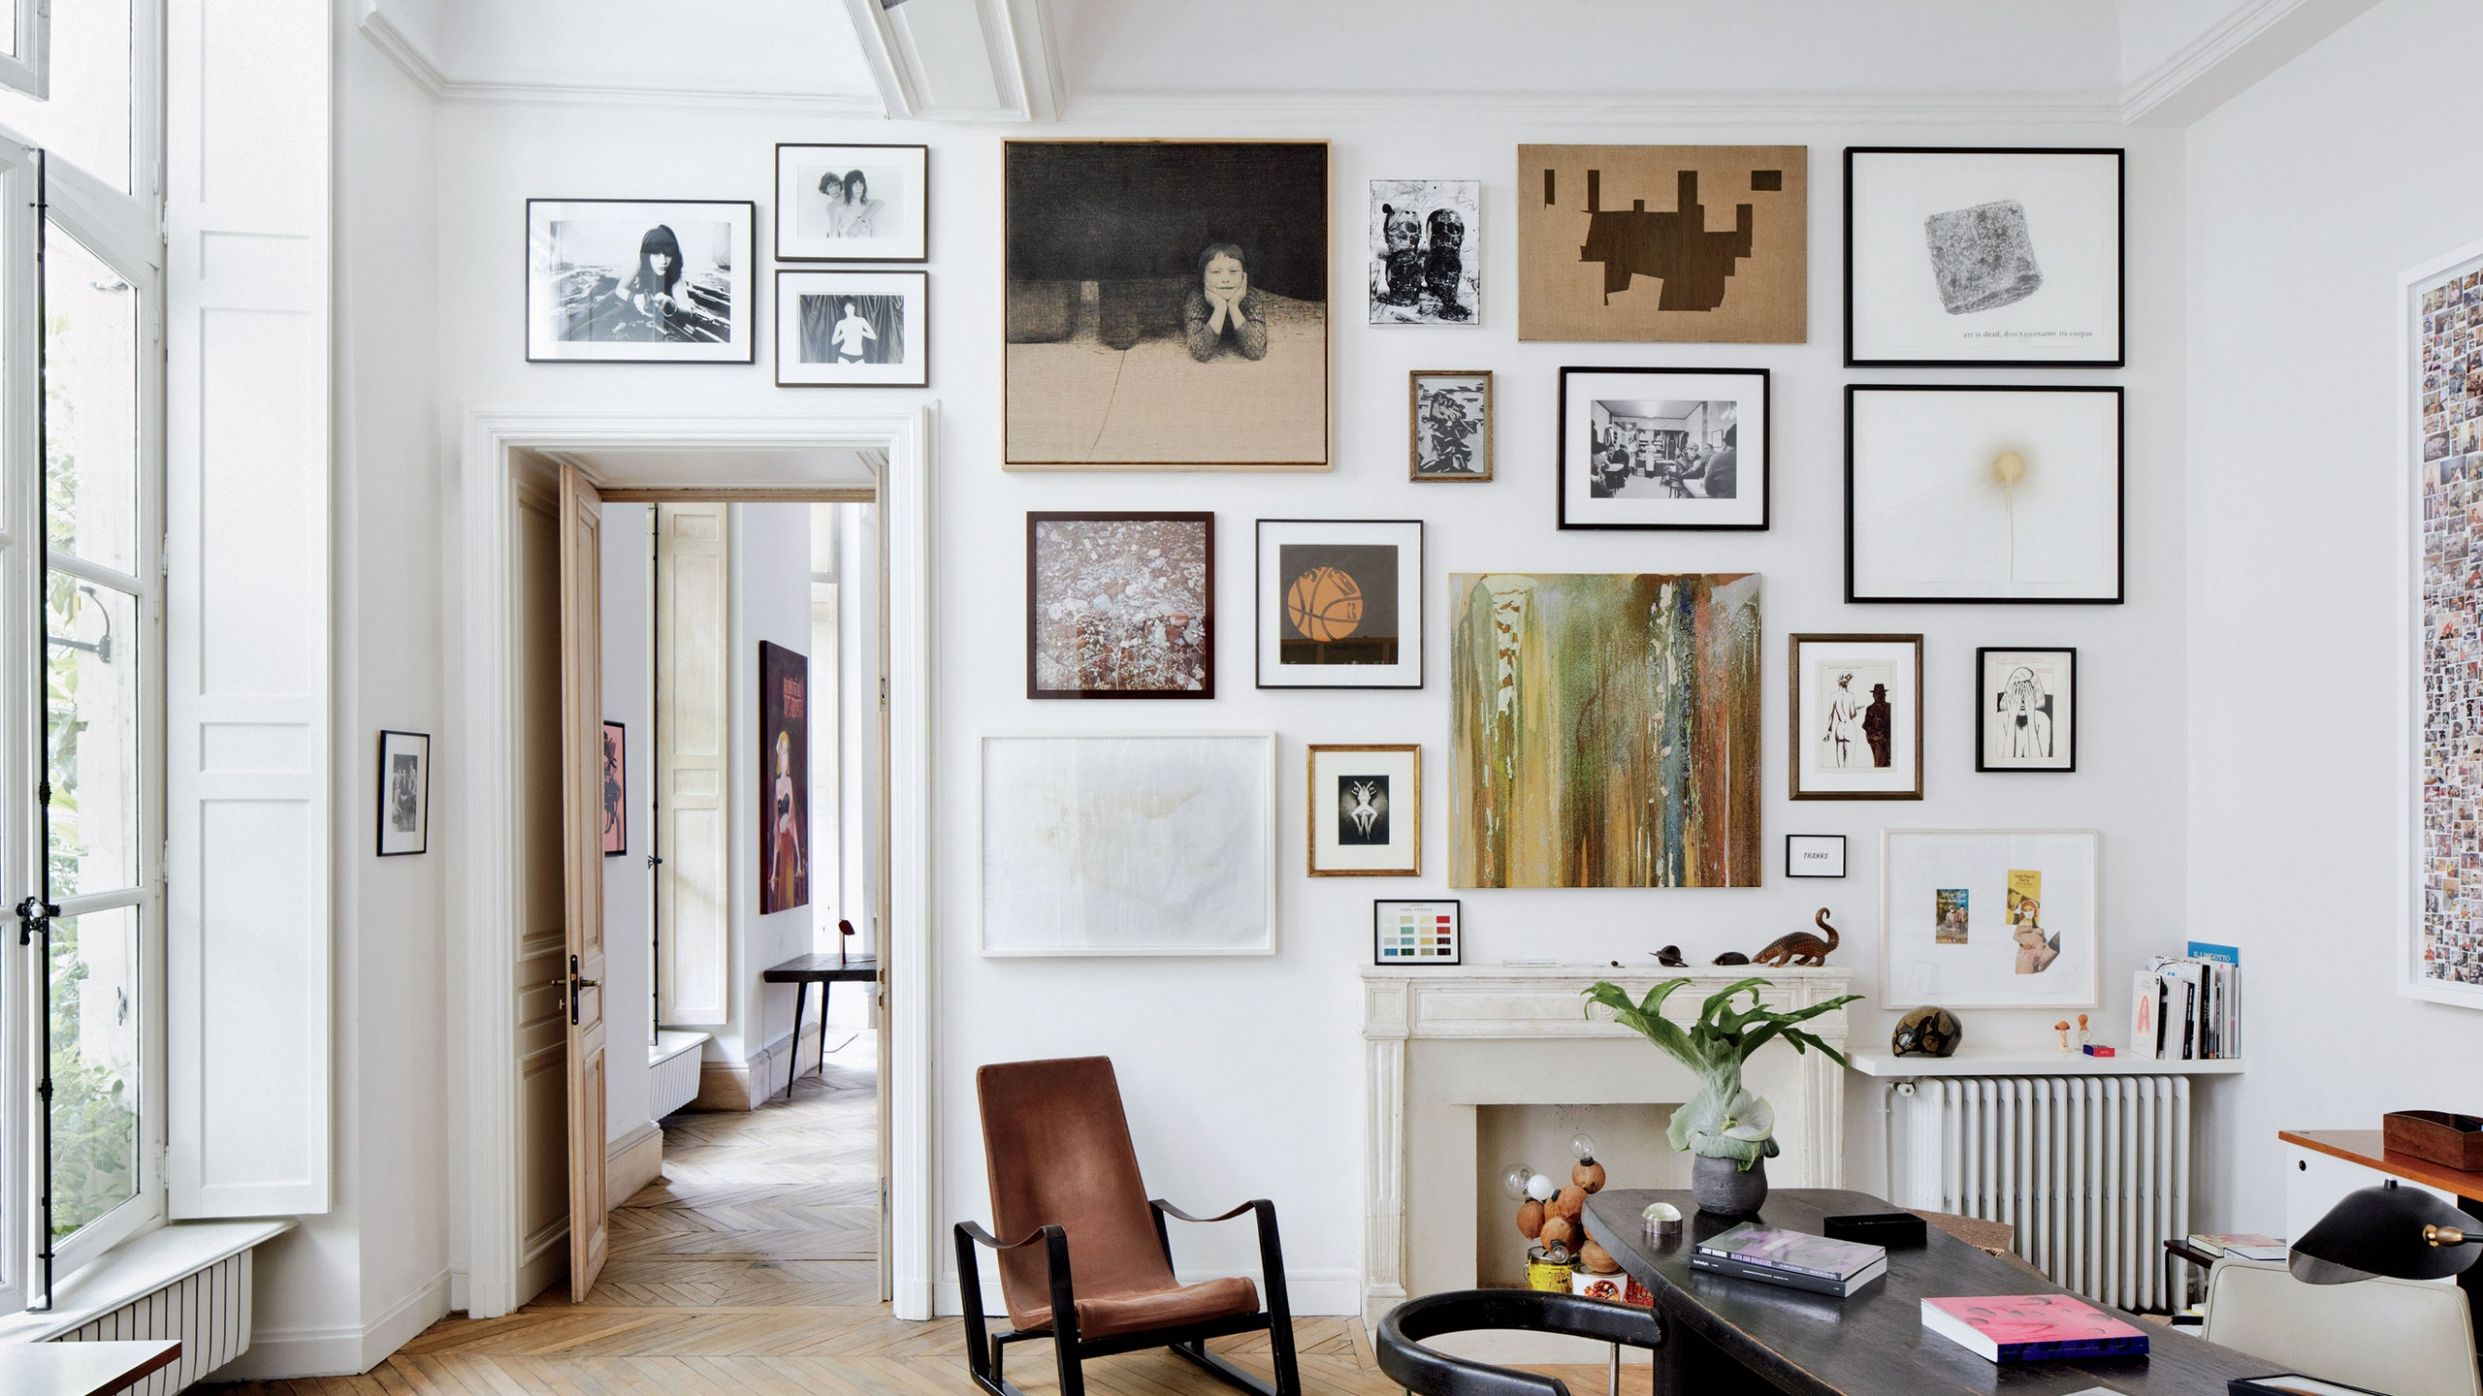 10 Wall Decor Ideas to Refresh Your Space | Architectural Digest - wall decor ideas at home